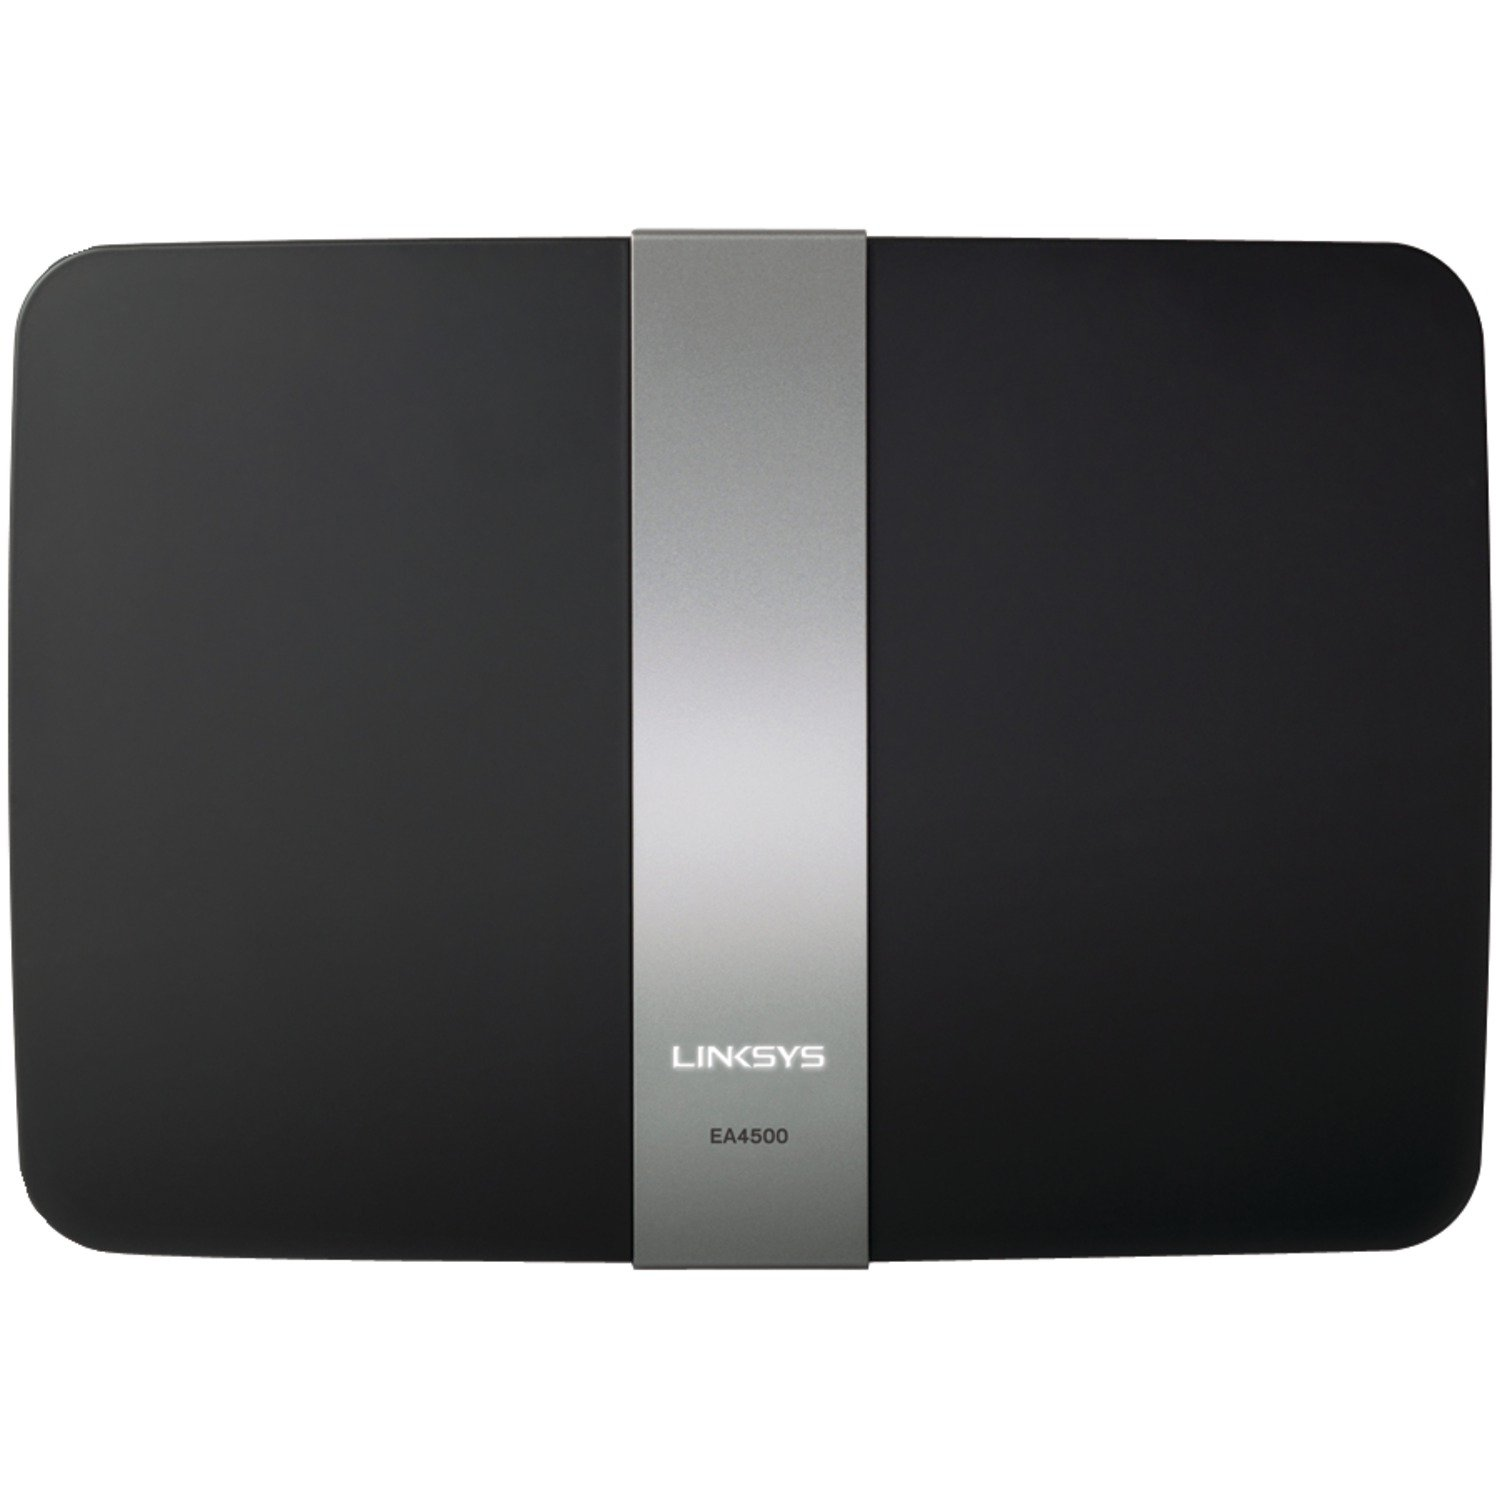 Top 5 Best Wireless Router (2020 Reviews & Buying Guide) 3